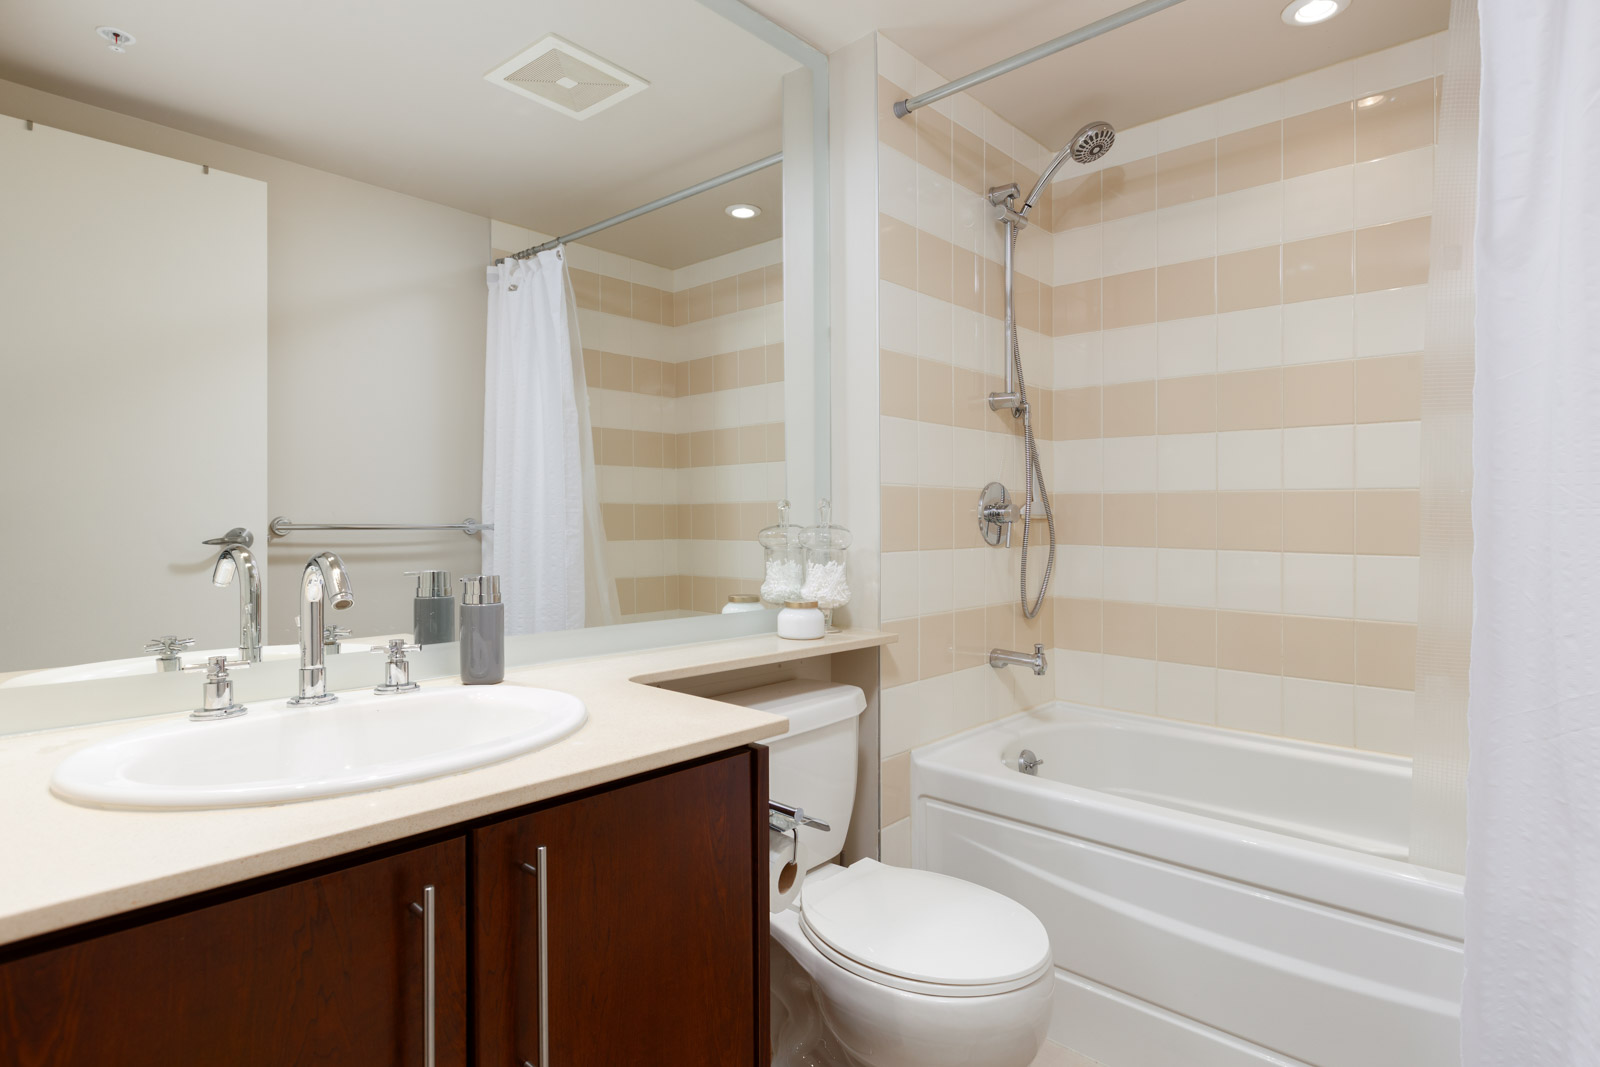 Bathroom with striped tiling in Yaletown Vancouver rental condo.